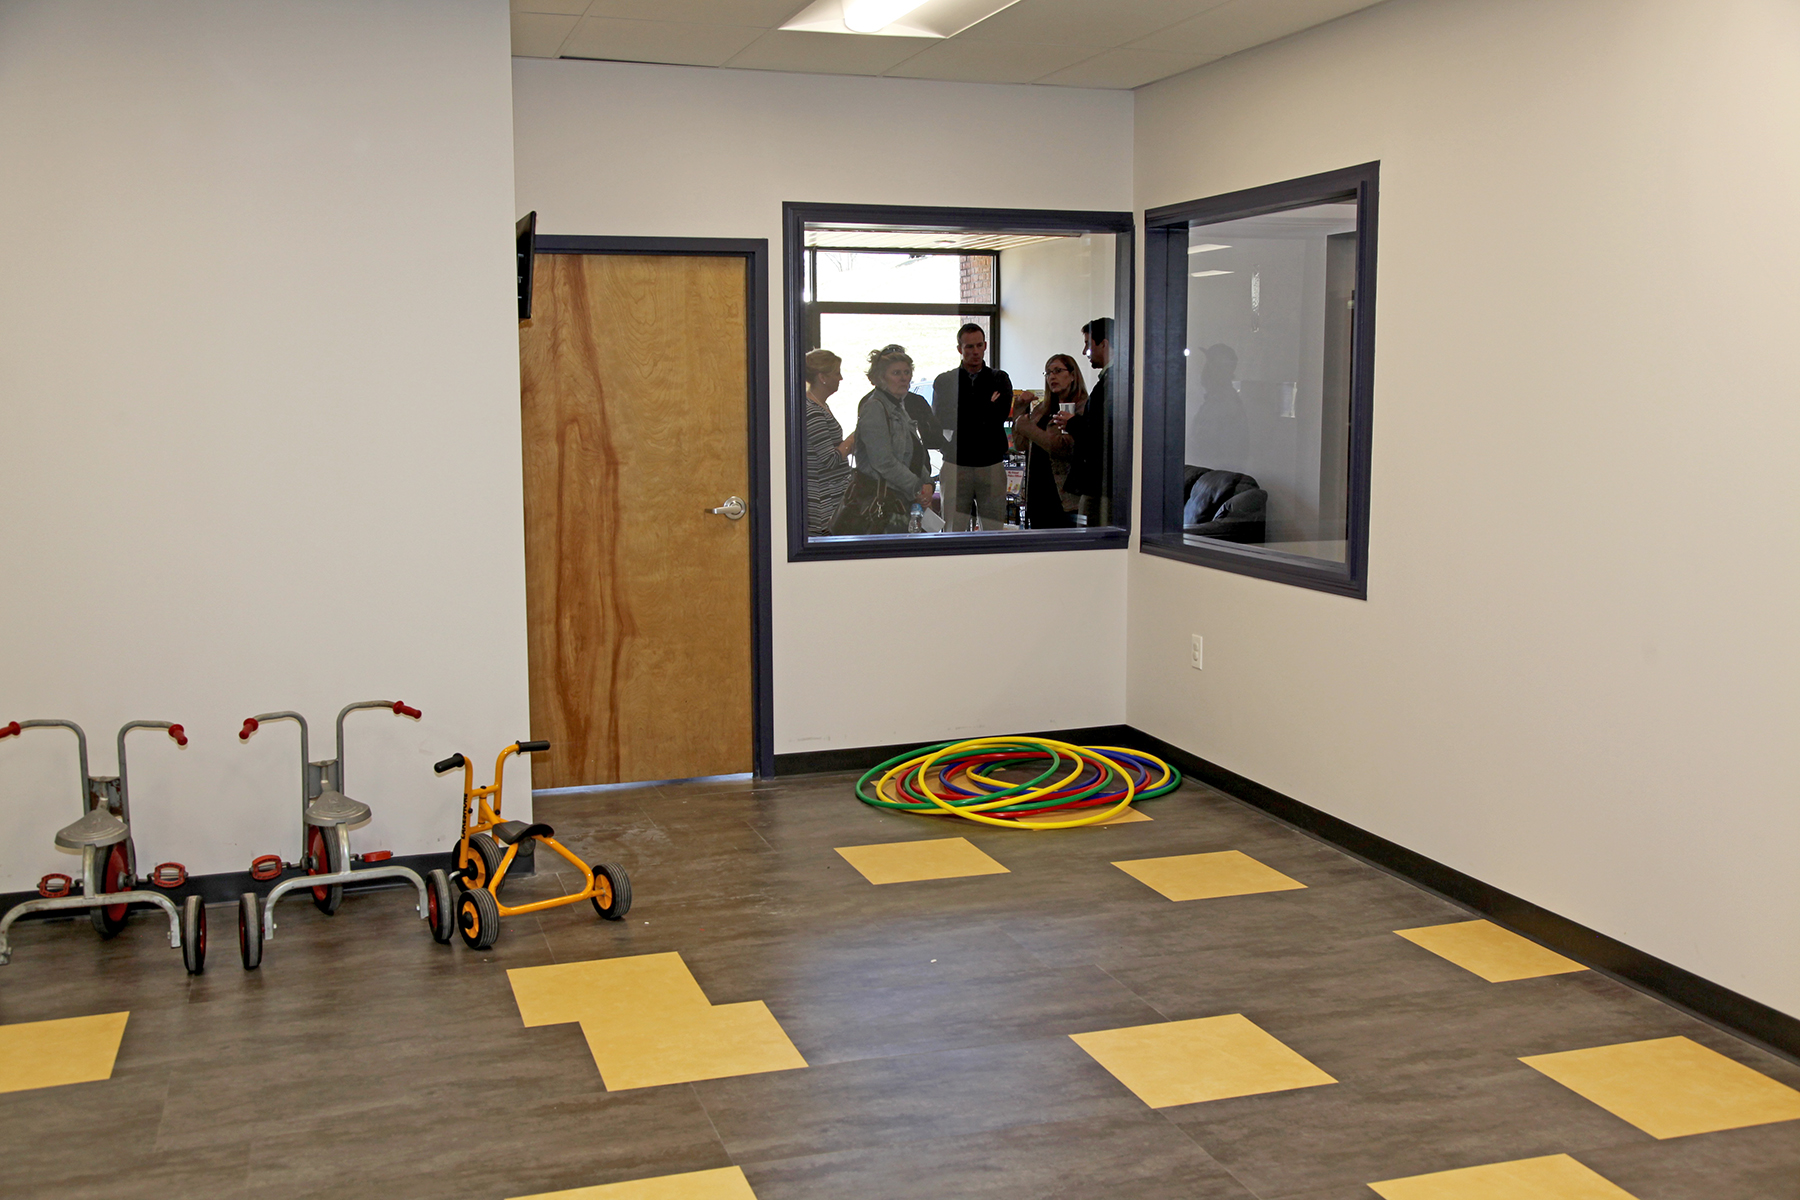 Boone County Early Learning Center